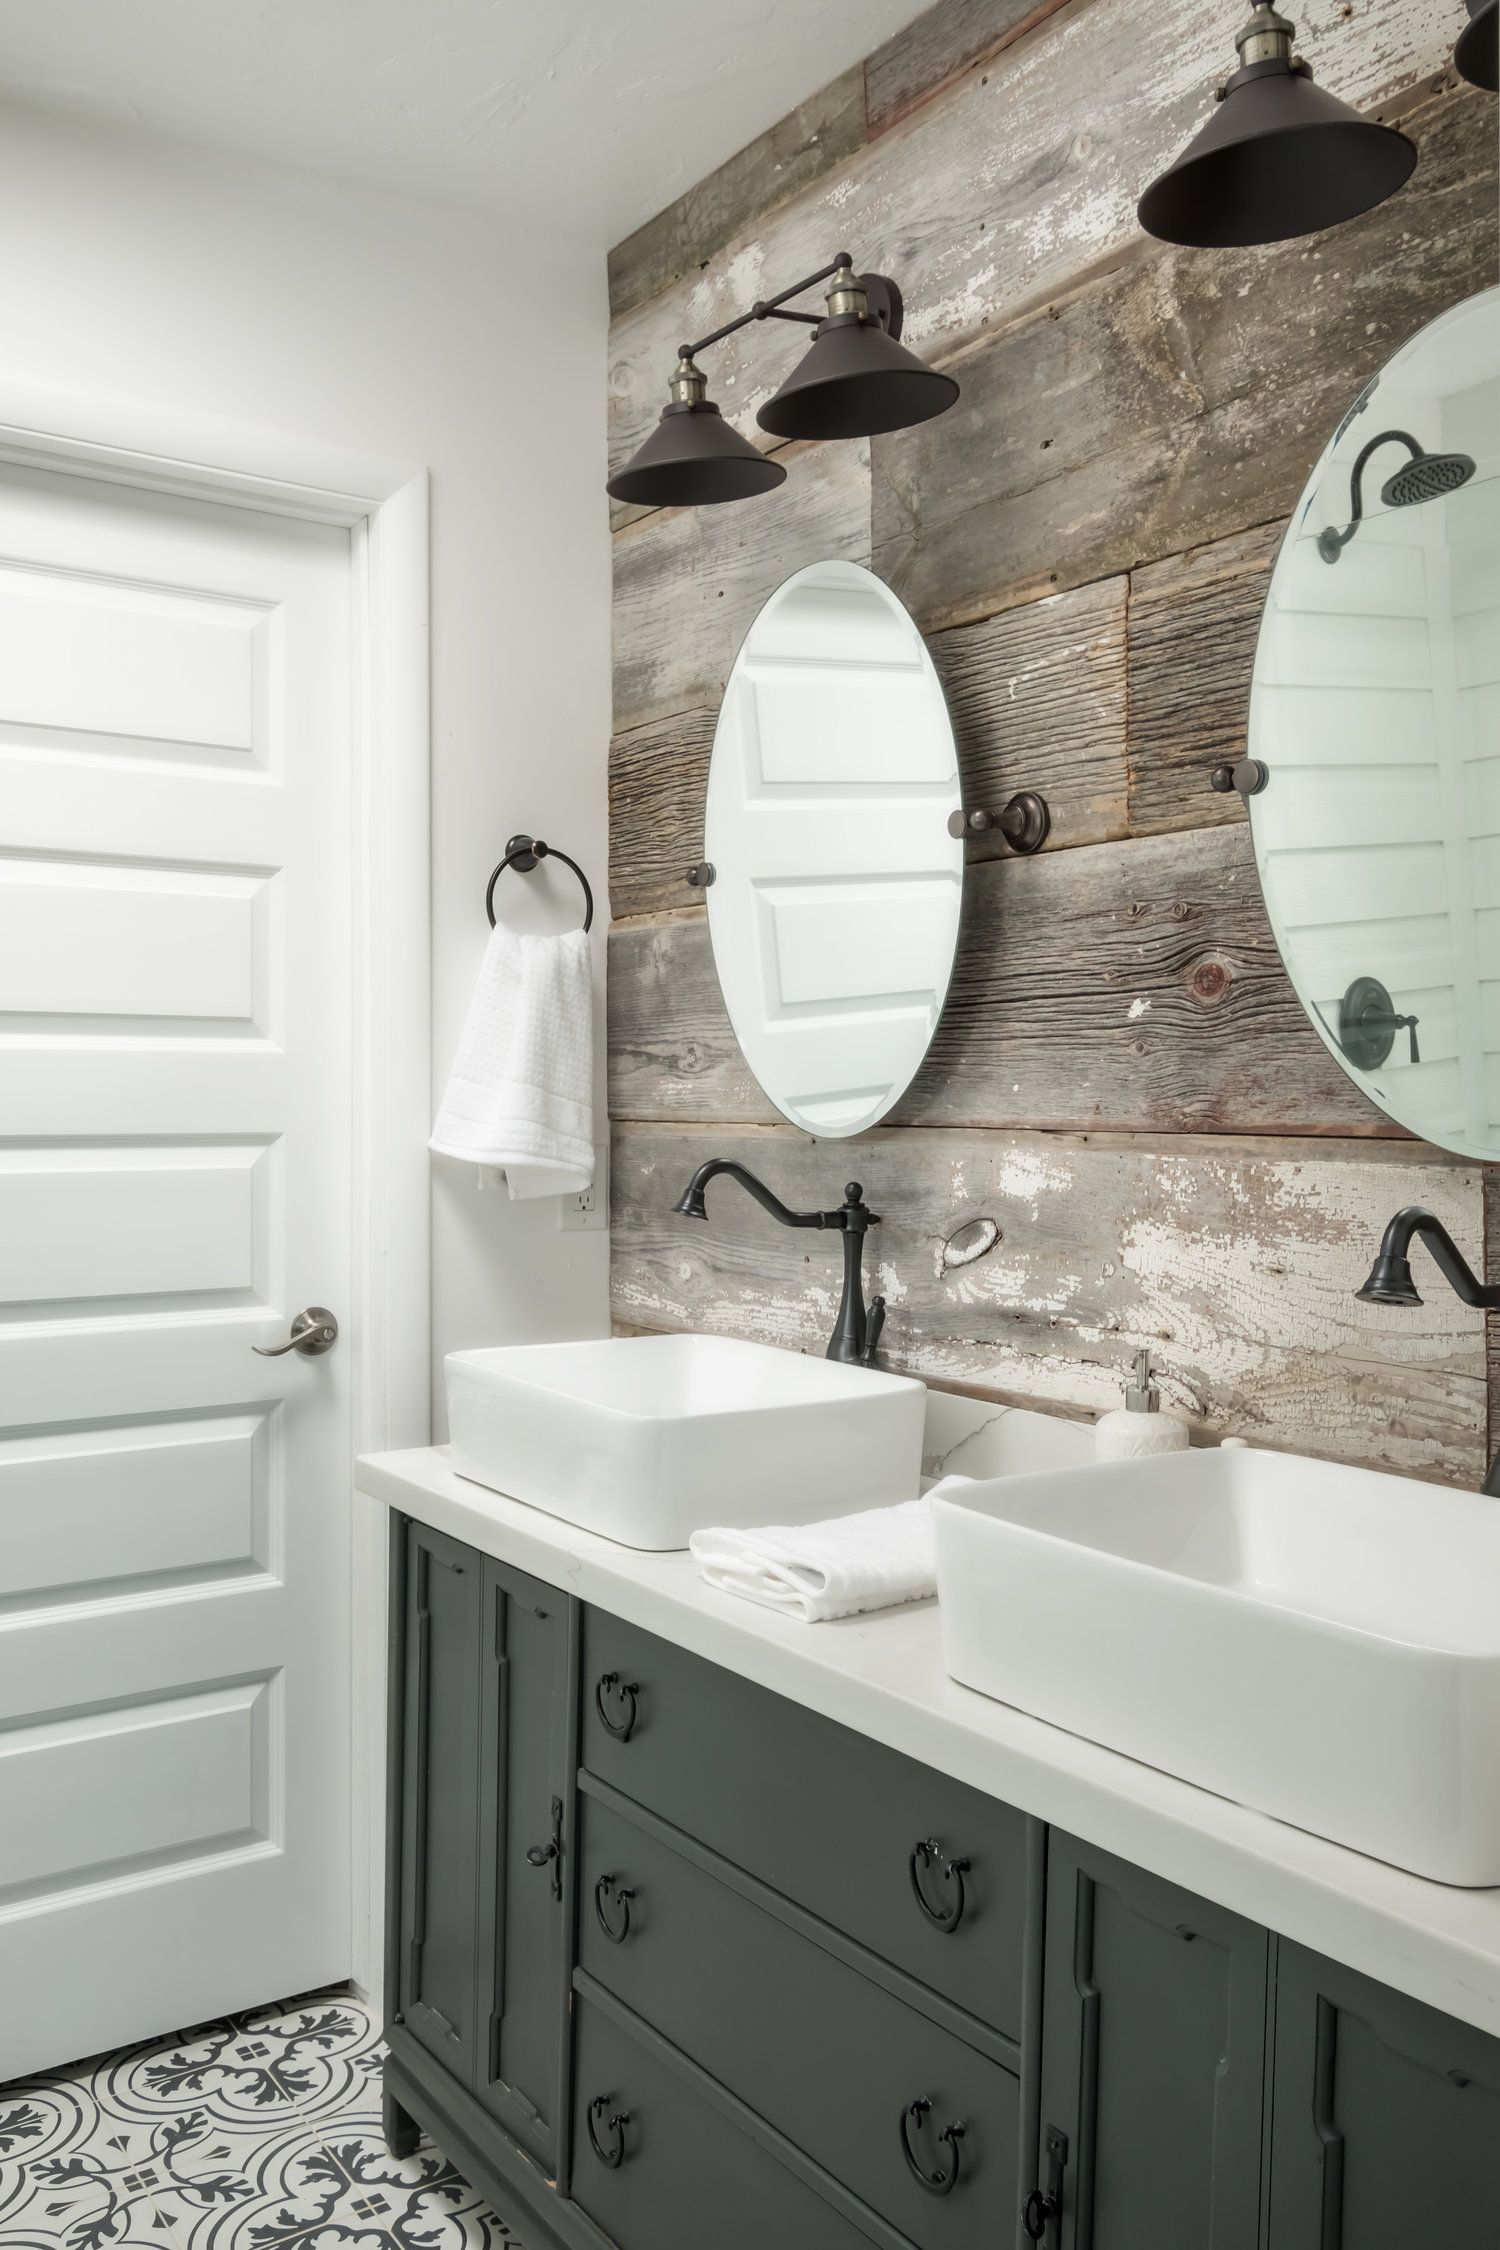 We love how this bathroom features reclaimed wood The dresser